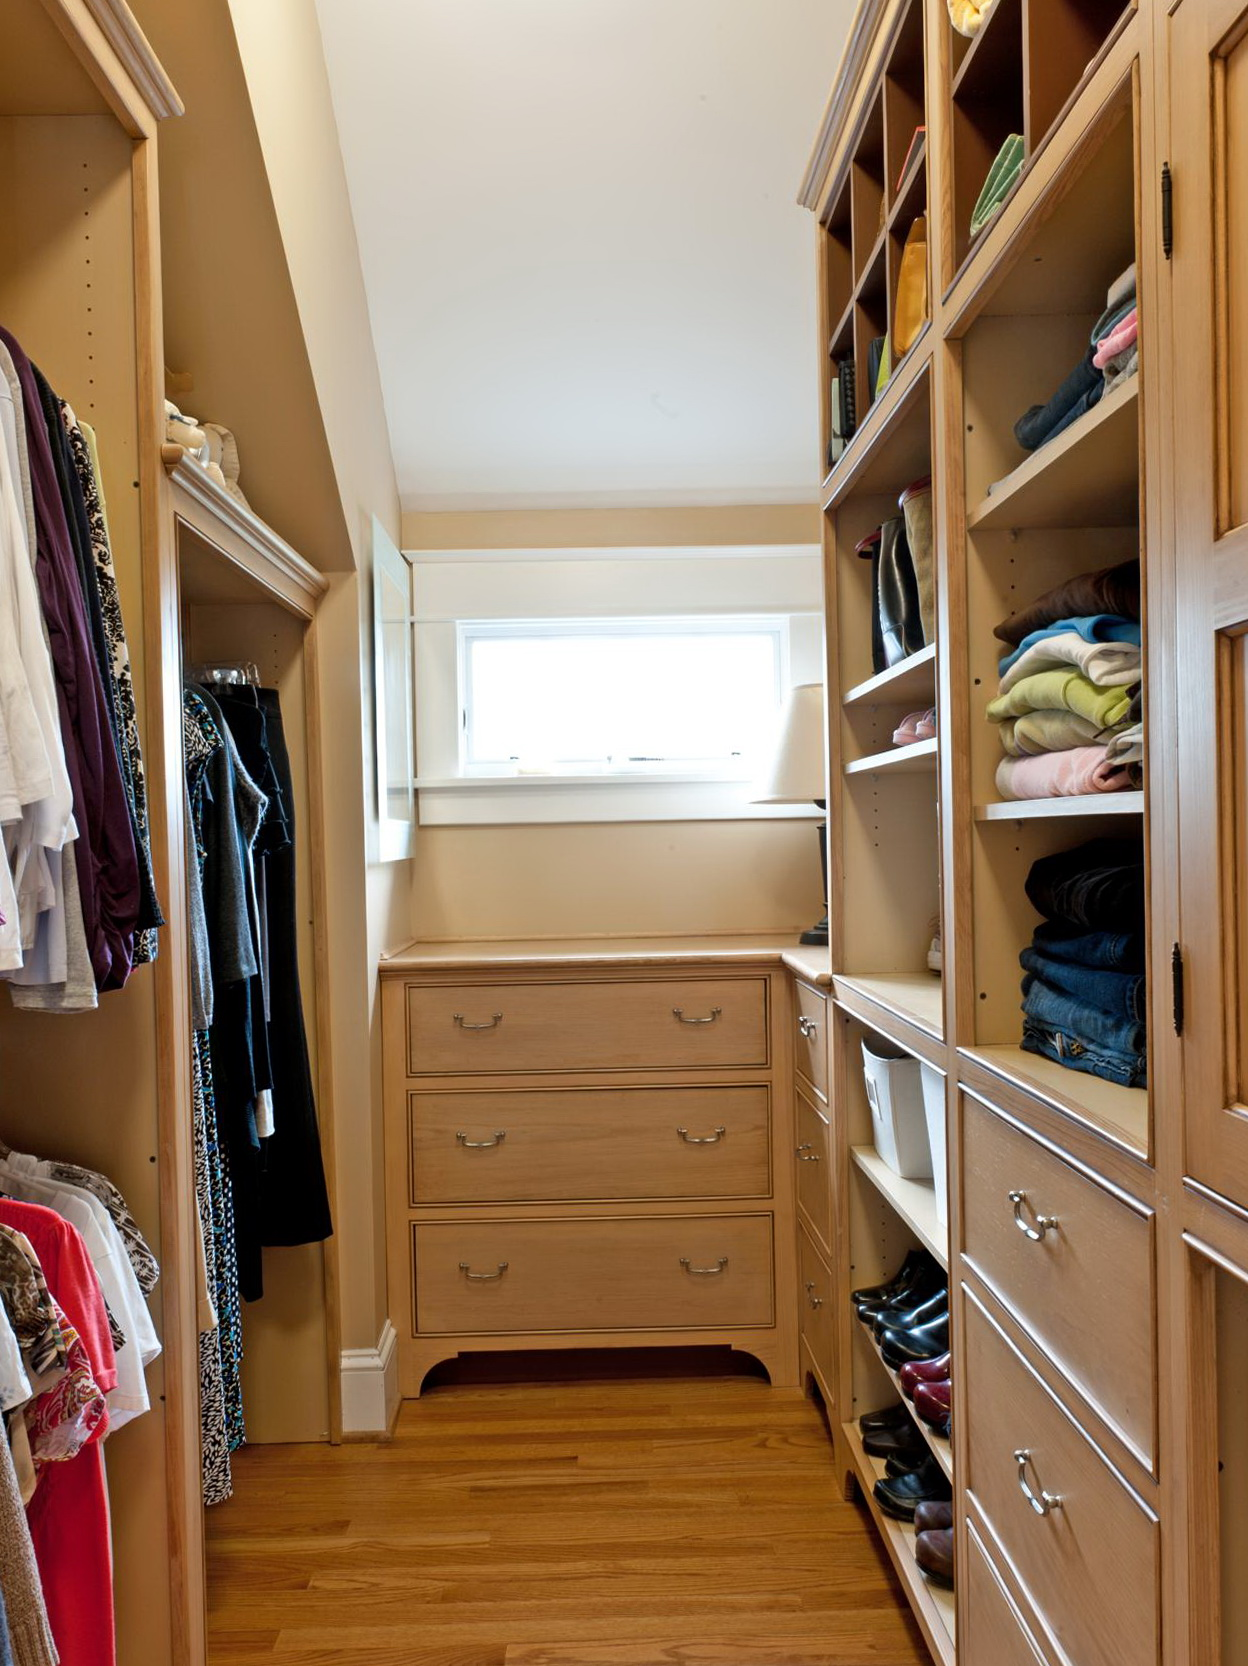 Design your own closet space home design ideas for Design your own closet